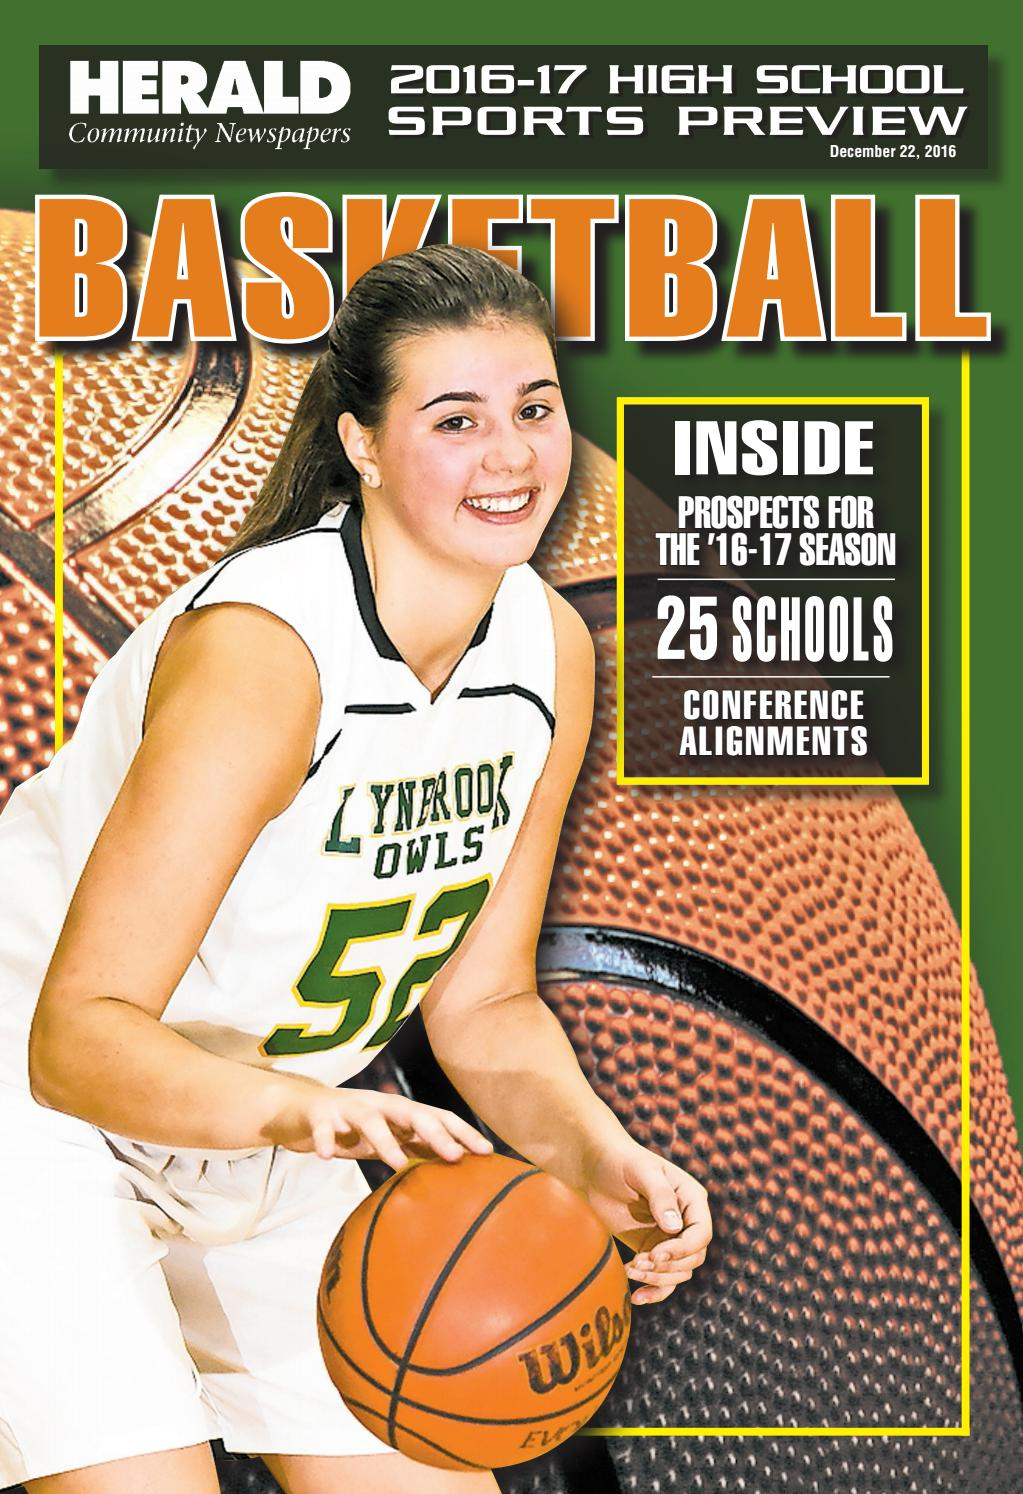 basketball season preview by ontario university athletics 2014 15 basketball season preview by ontario university athletics issuu